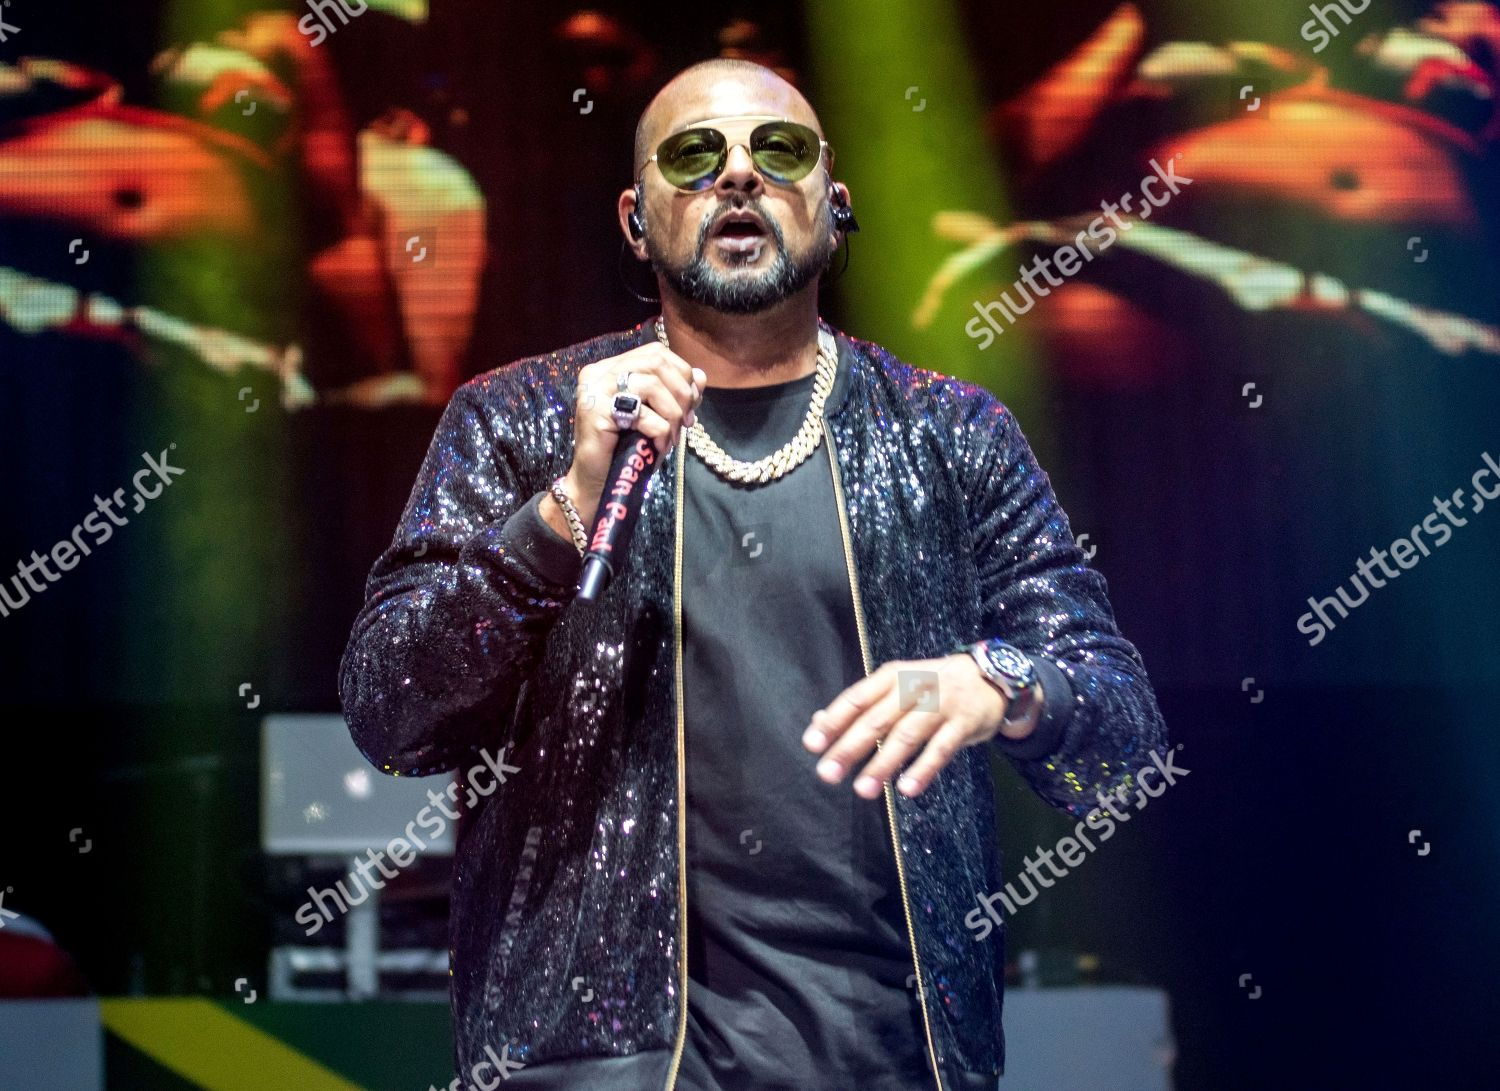 Sean Paul Editorial Stock Photo - Stock Image | Shutterstock